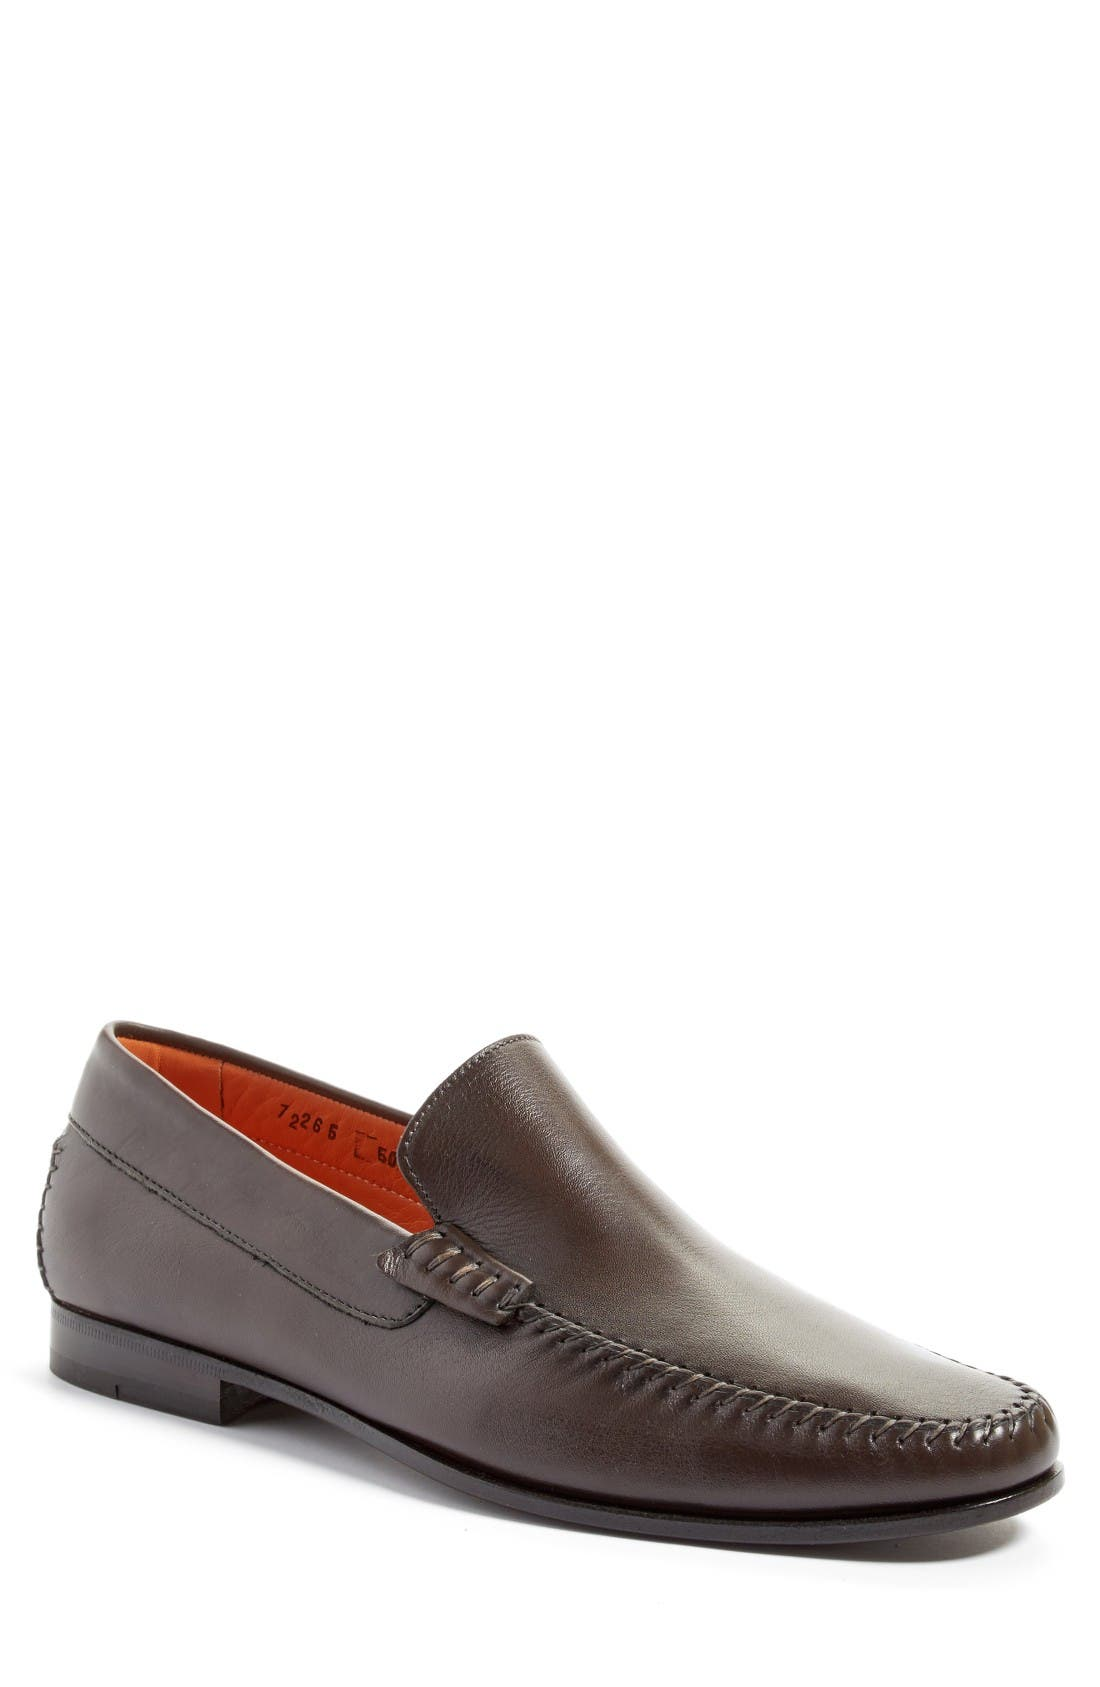 'Auburn' Venetian Loafer,                             Main thumbnail 2, color,